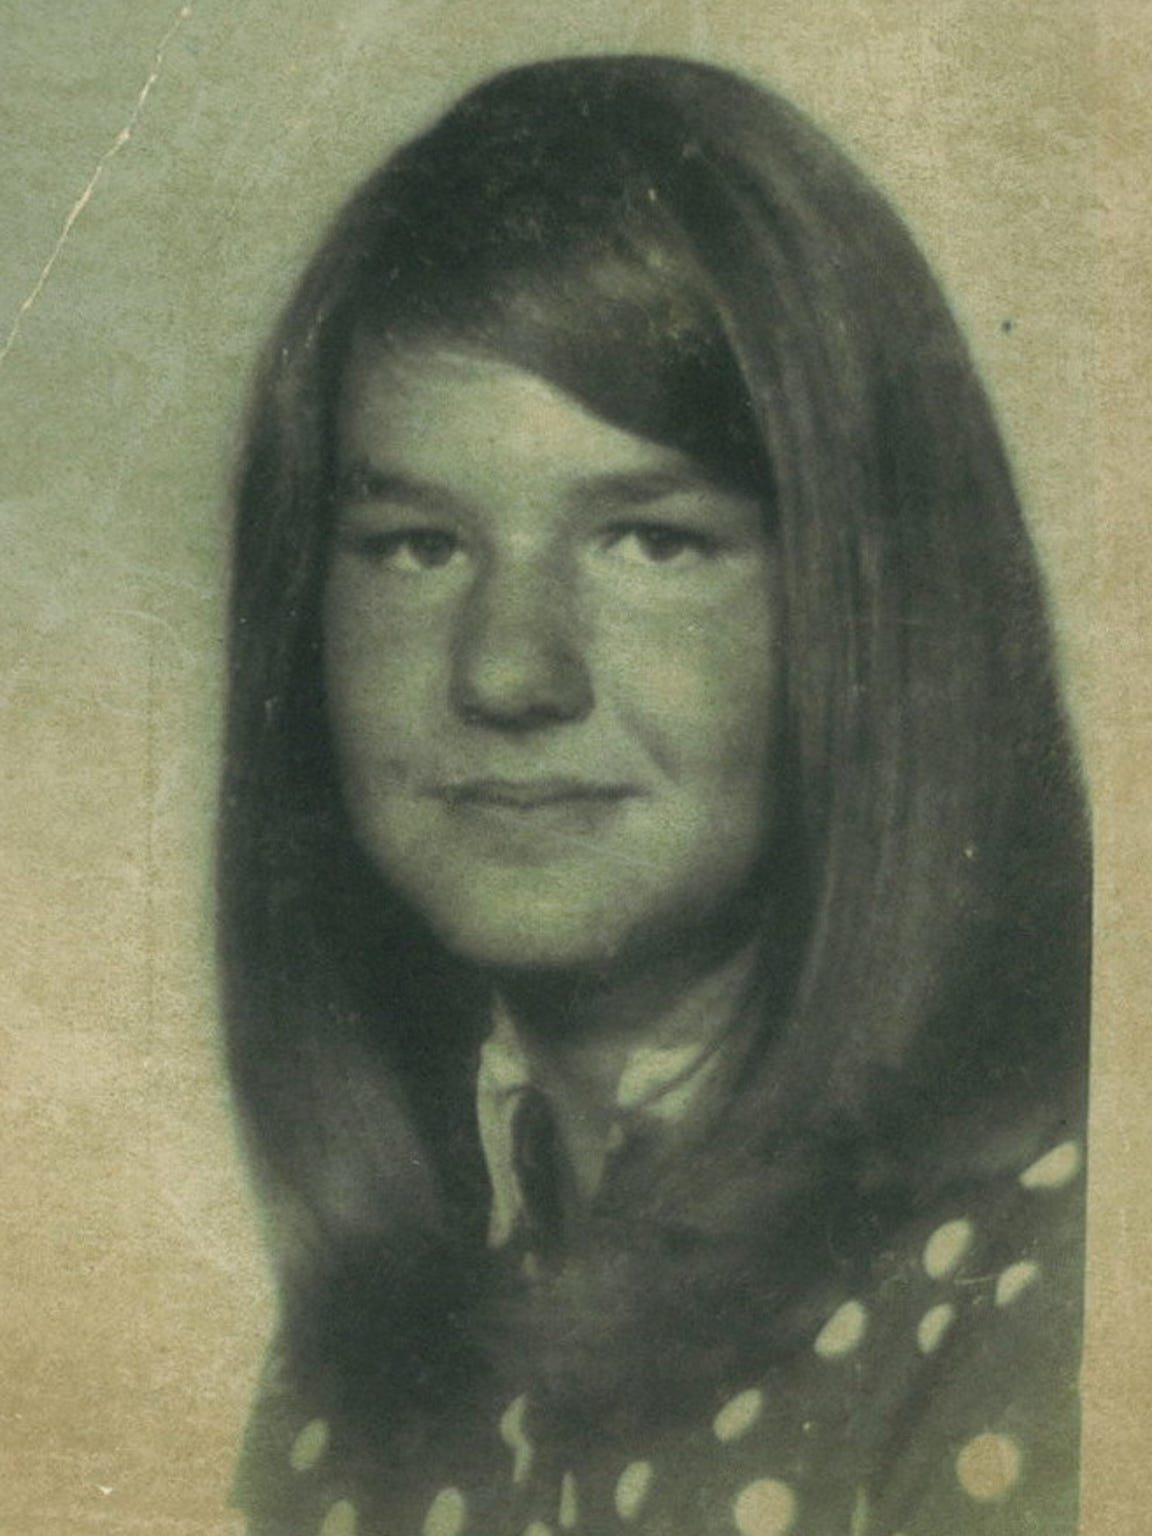 Infamous Lansing-area cases include serial killers, unsolved